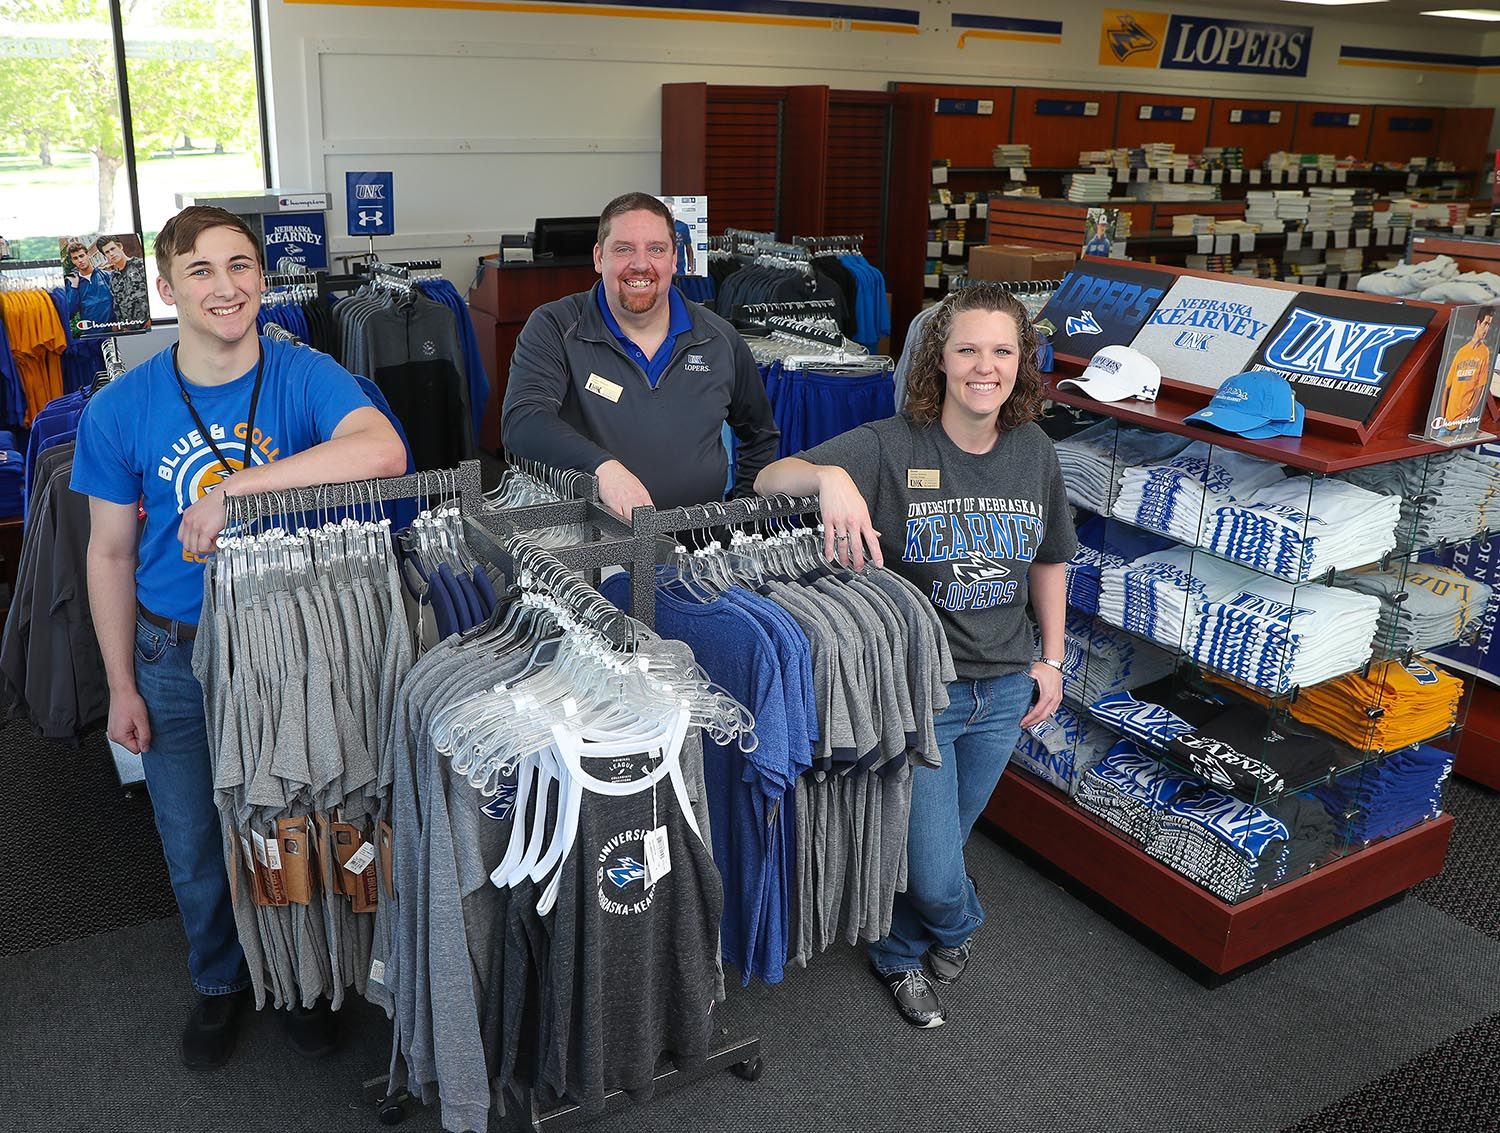 Antelope Bookstore staff, from left, Bodhi Jelinek, Len Fangmeyer and Dawn Bickford are preparing to move the store from its temporary location back to the Nebraskan Student Union on the UNK campus. (Photo by Corbey R. Dorsey, UNK Communications)